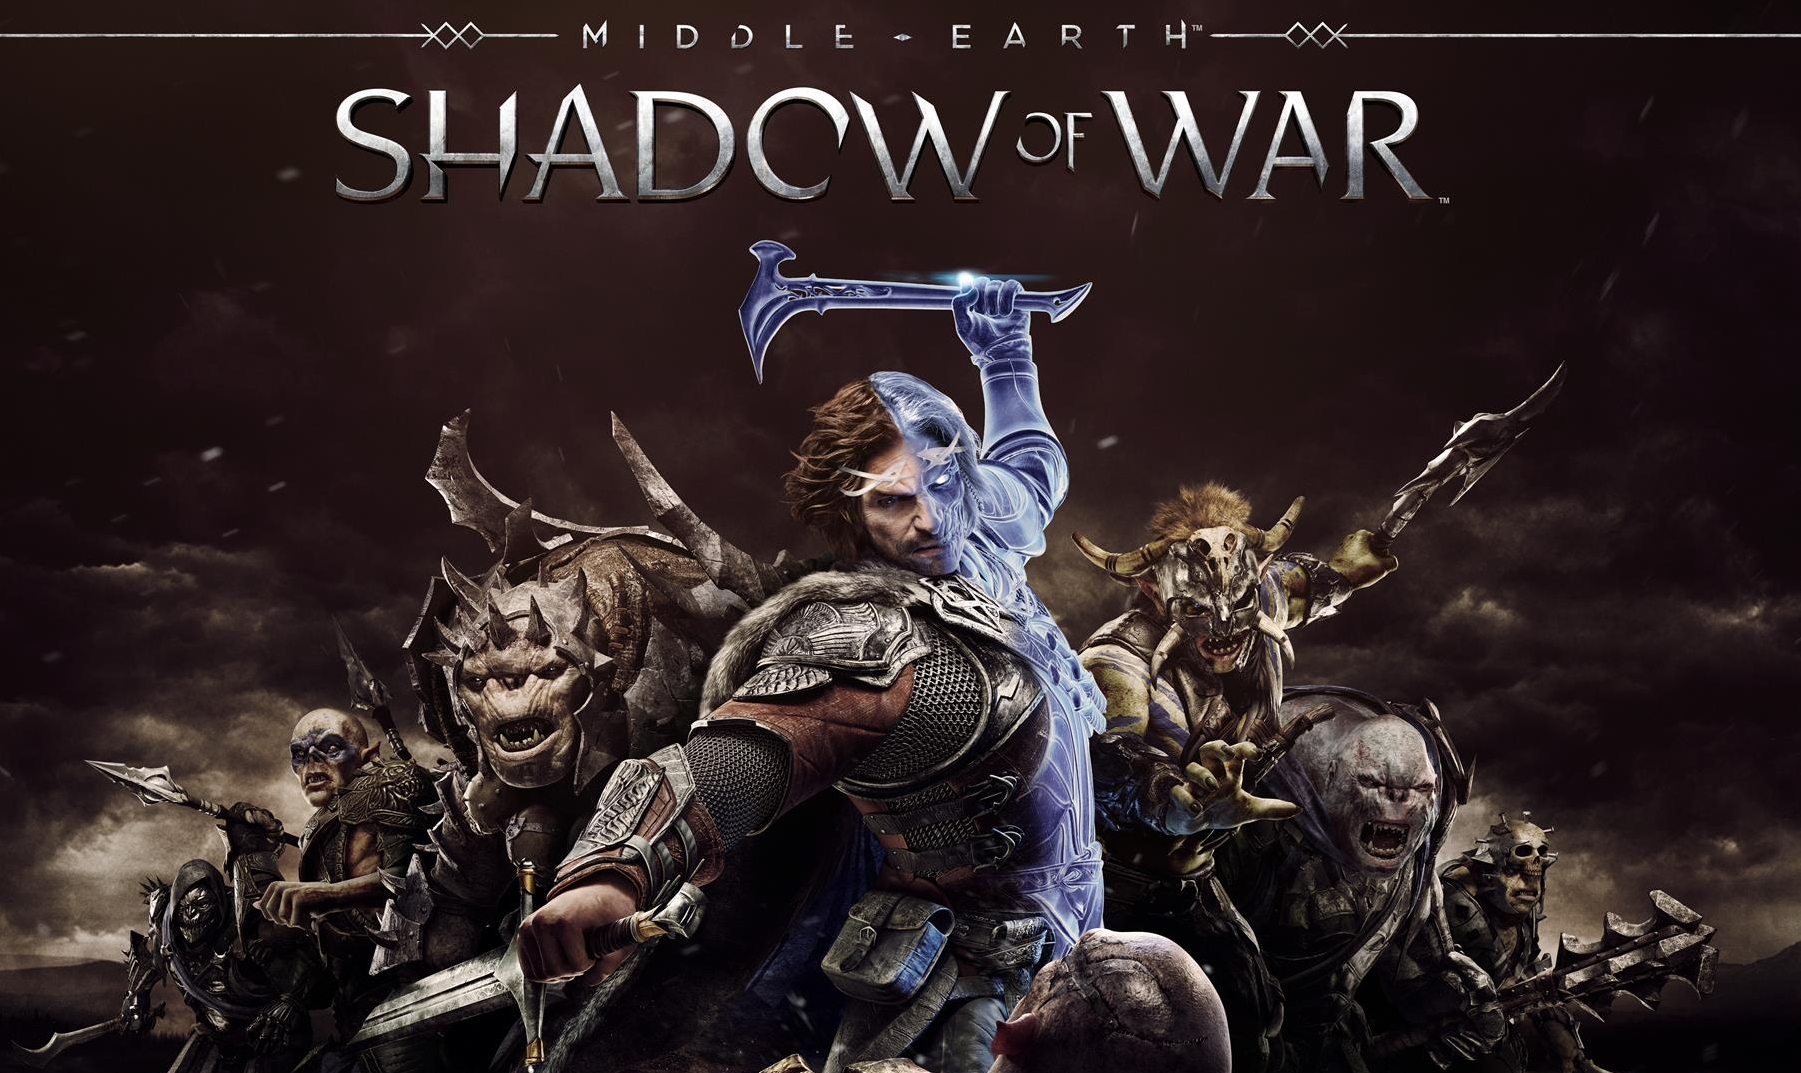 معرفی بازی Middle-earth: Shadow of War